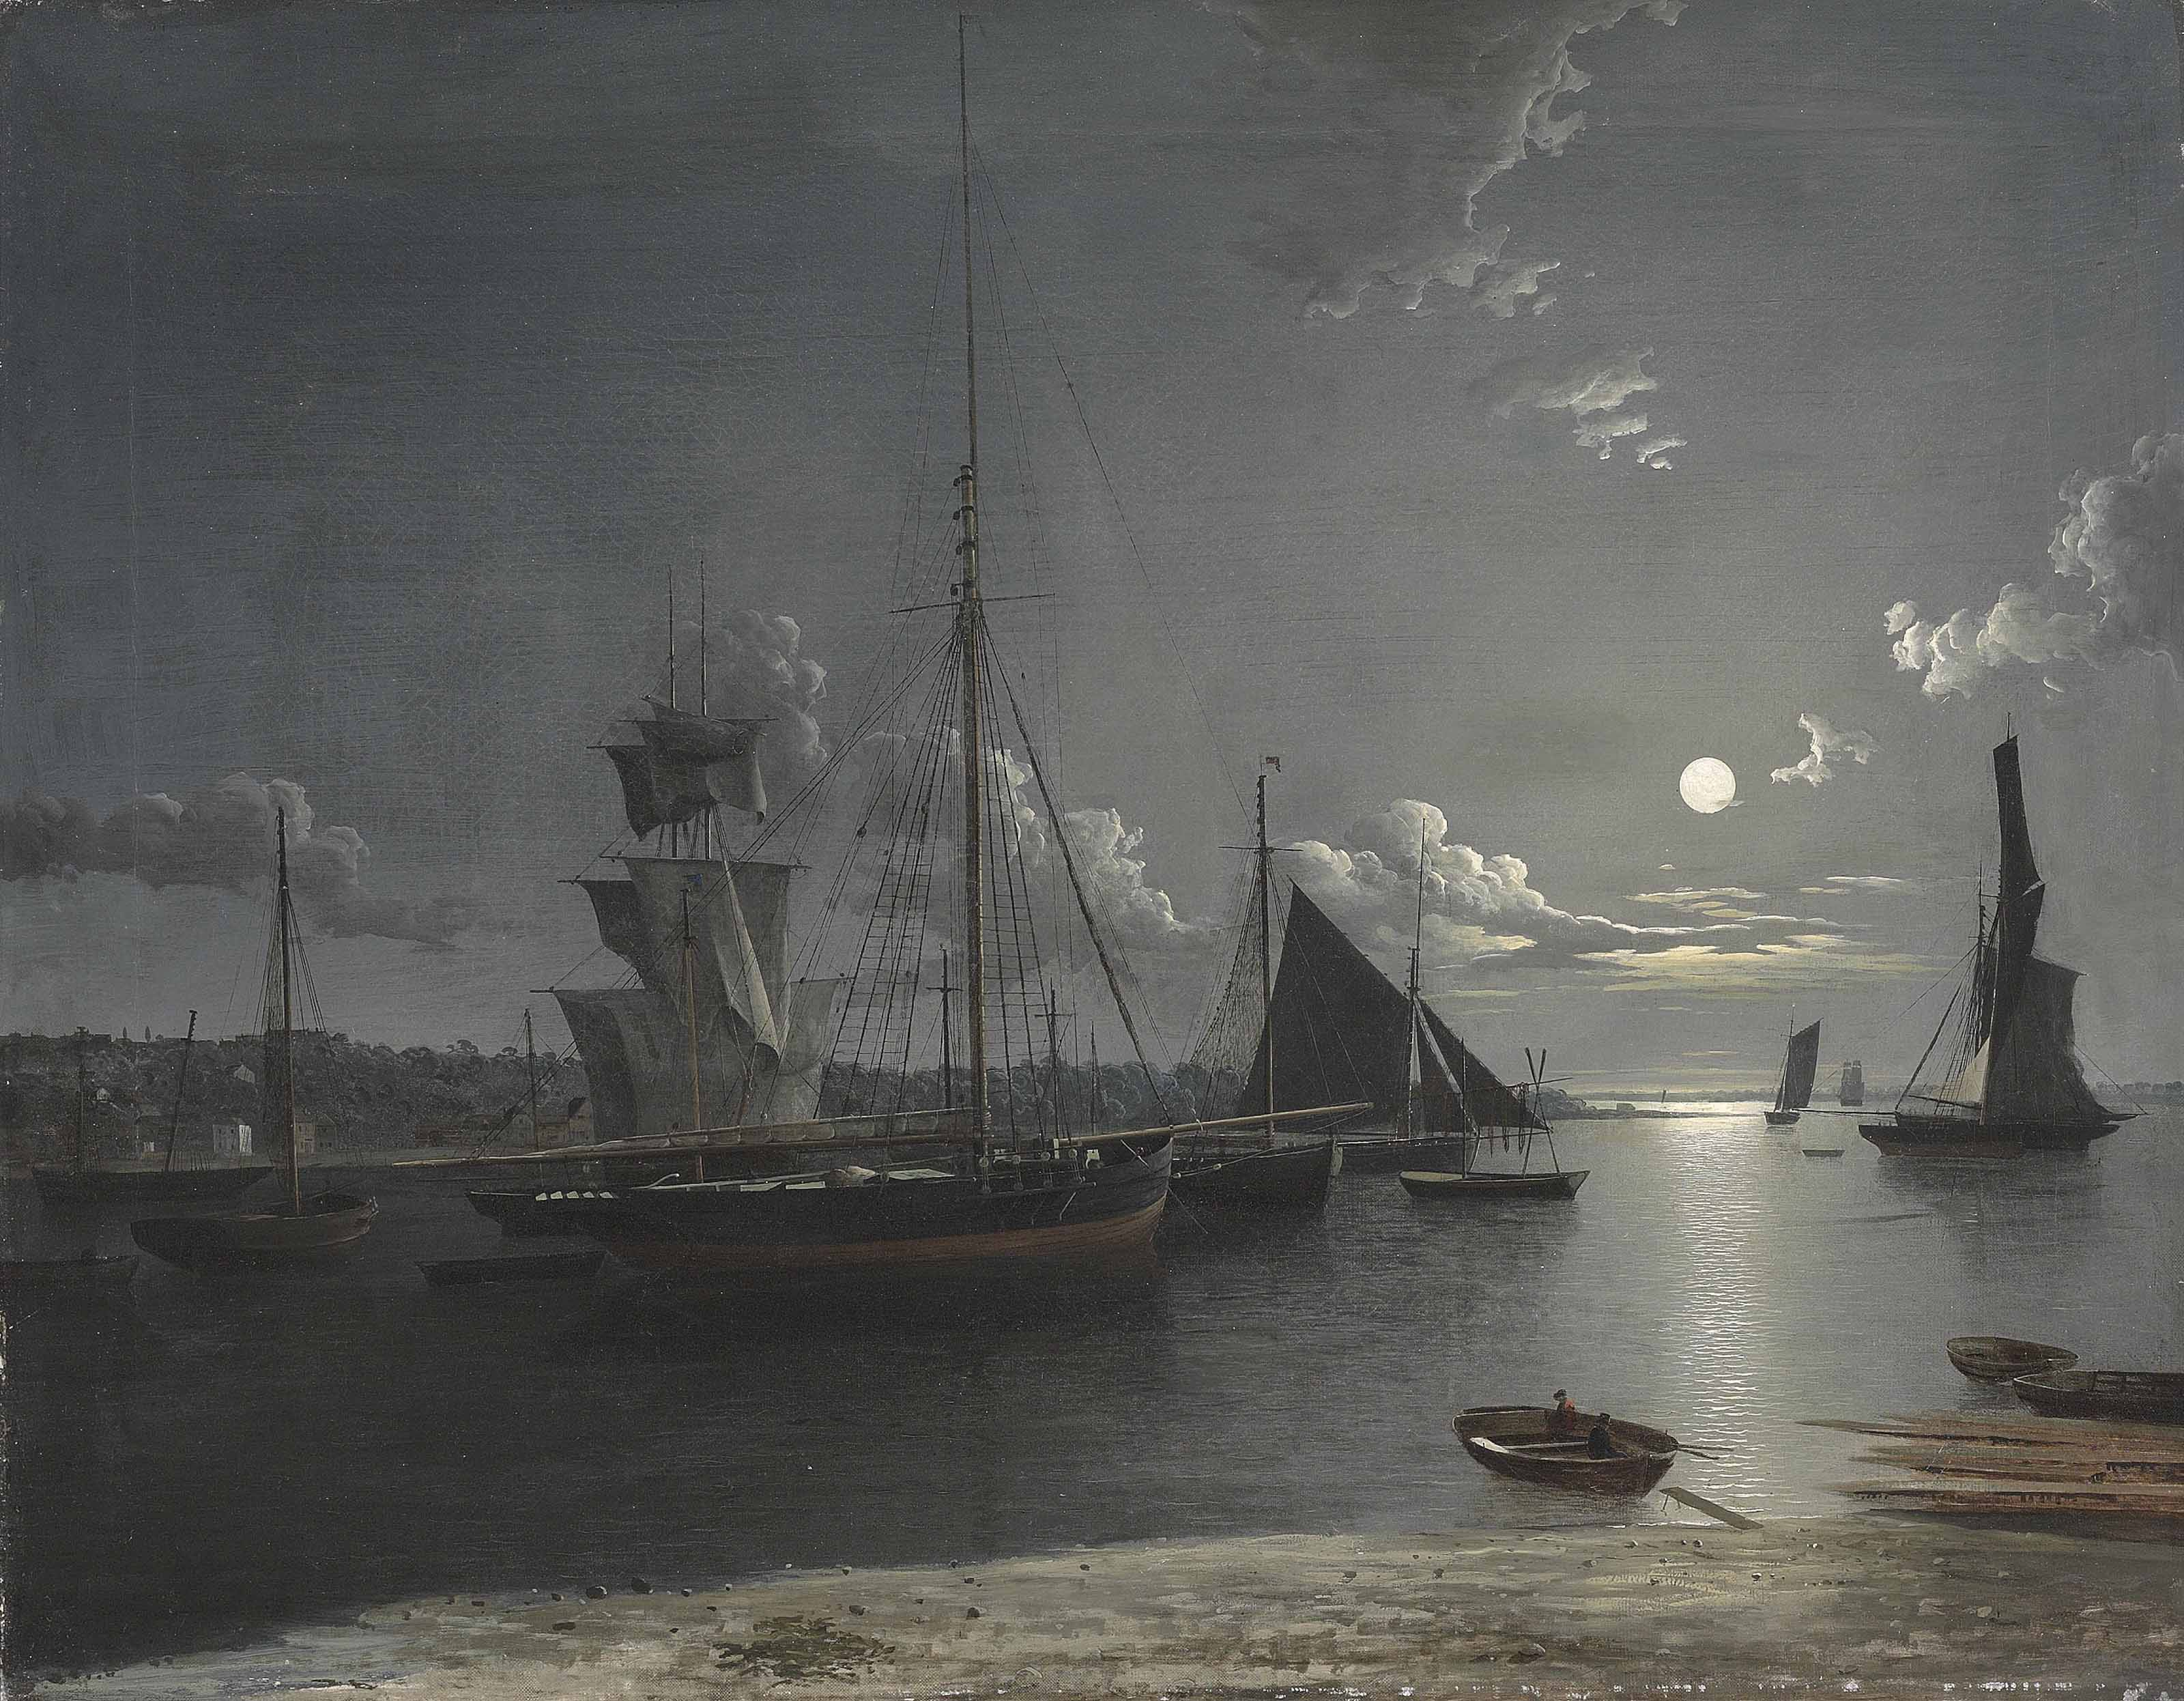 Shipping in the estuary under moonlight